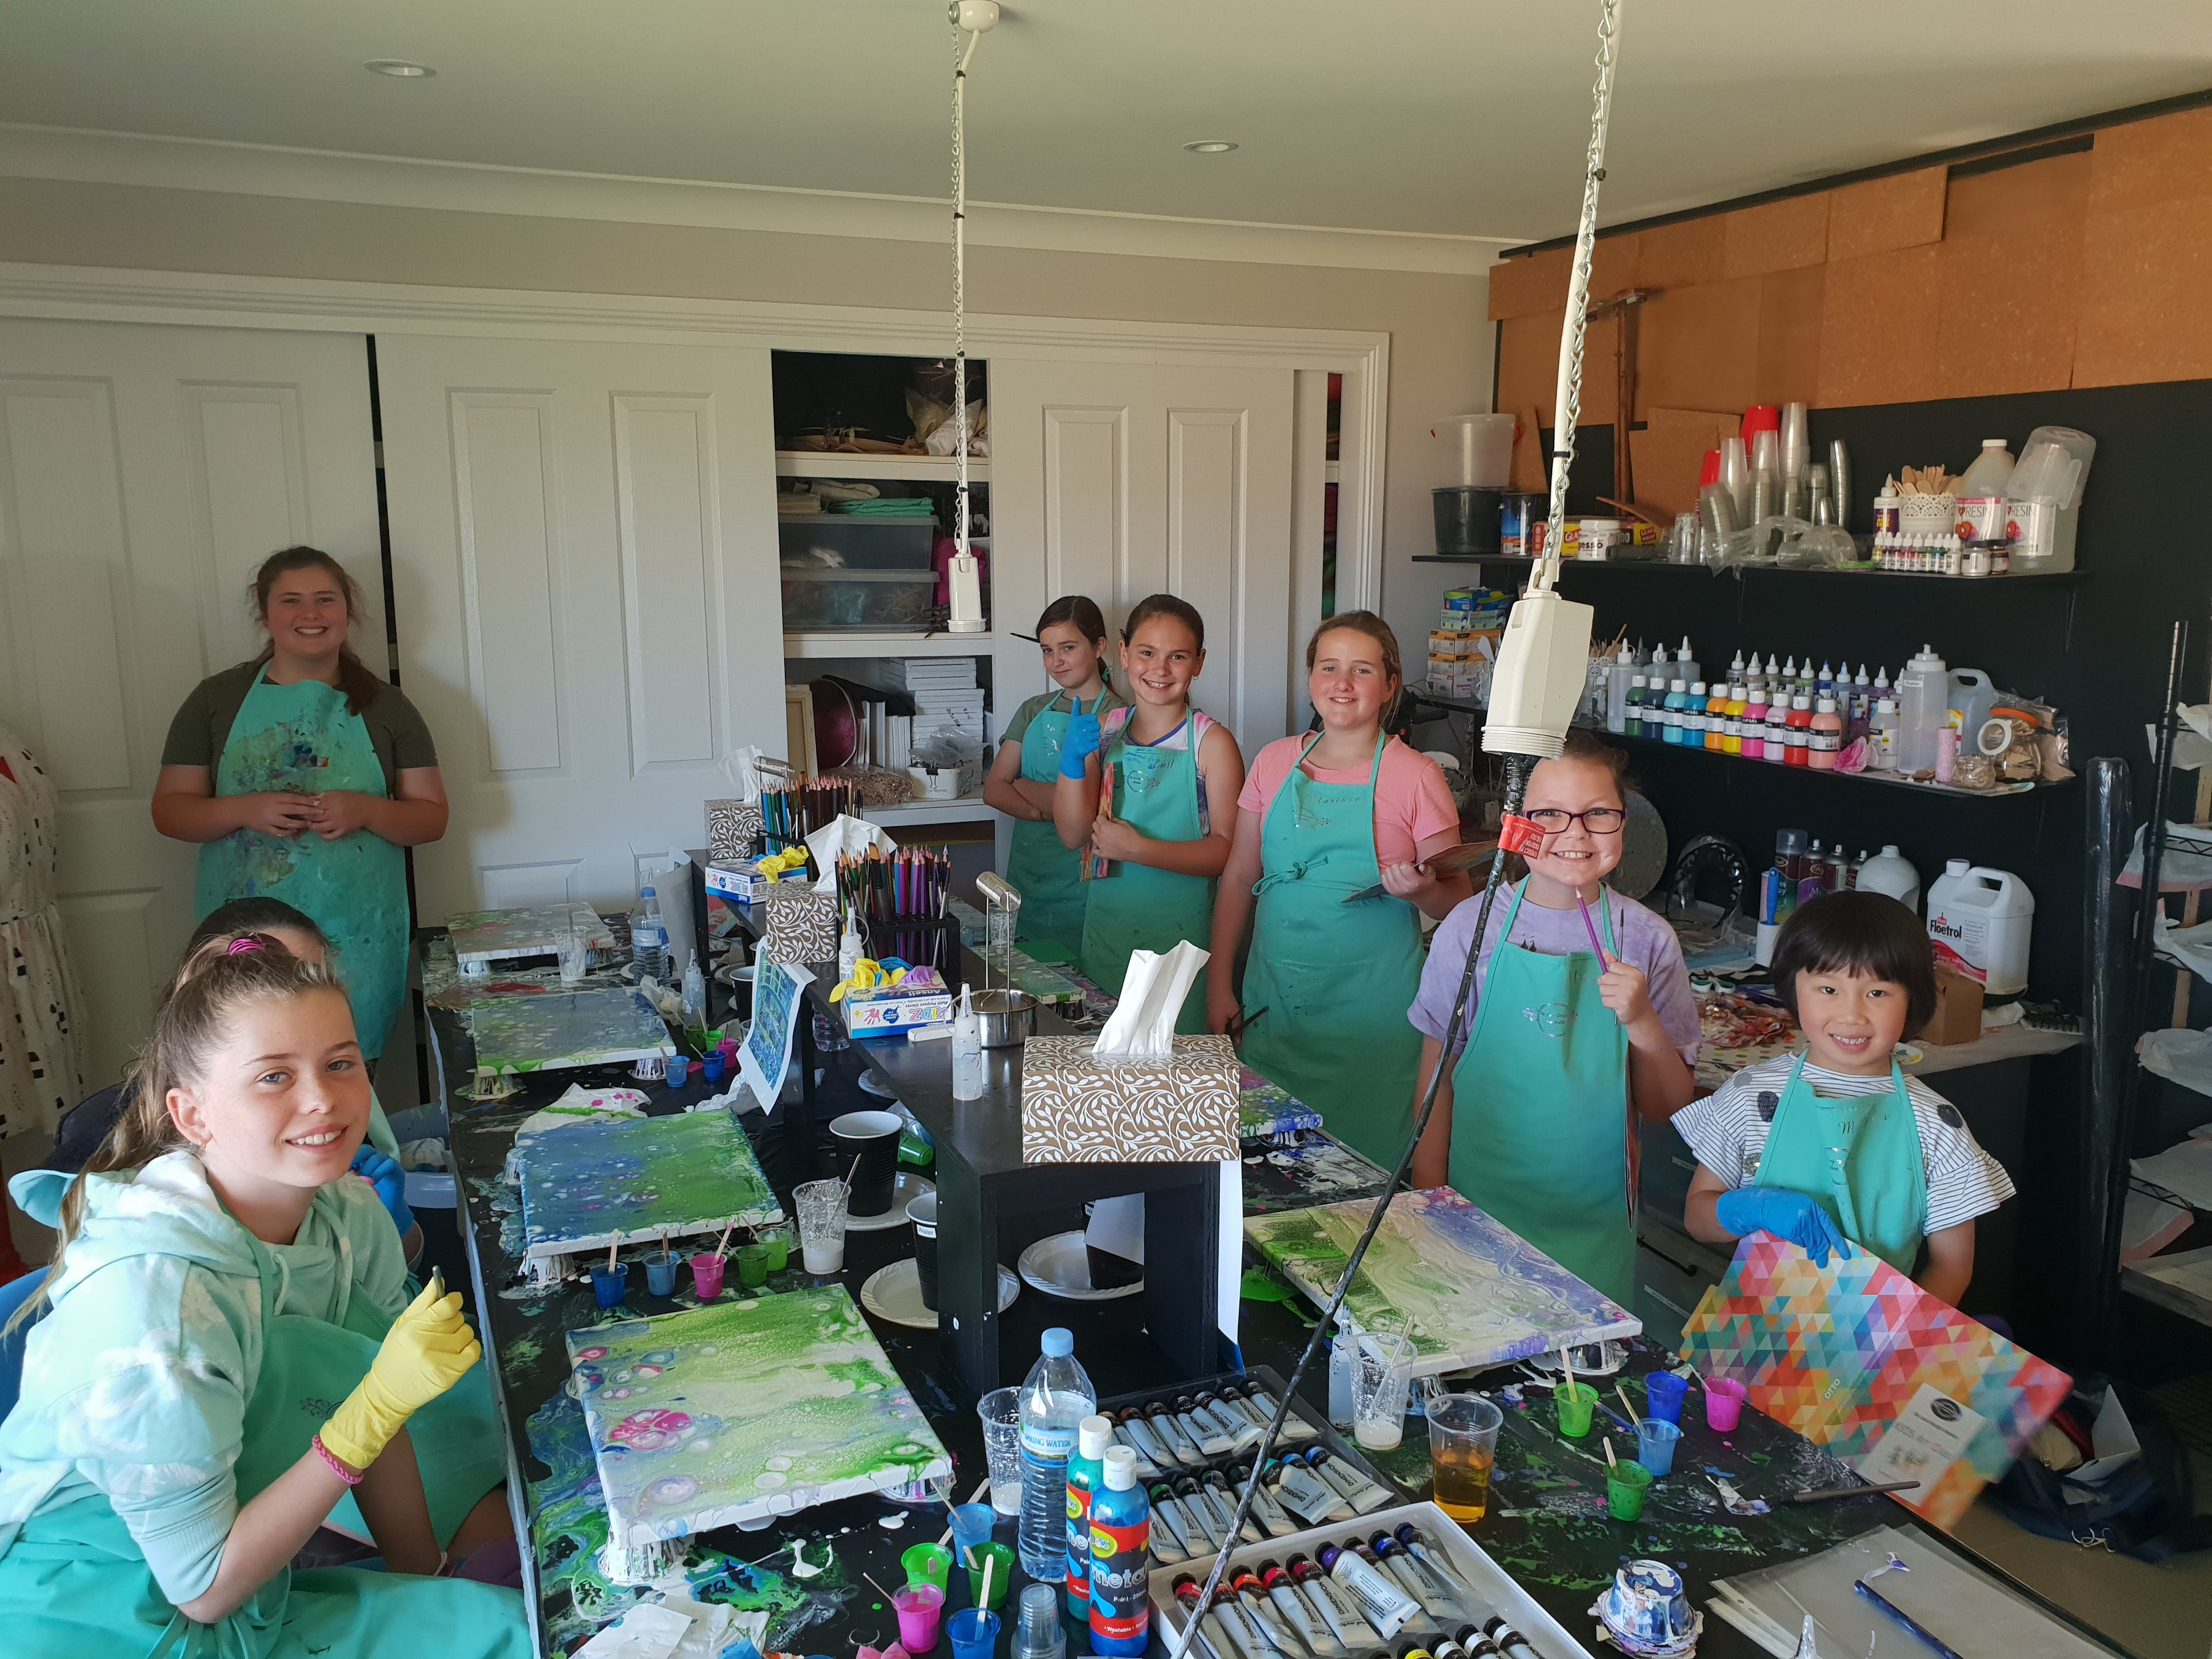 School holidays - Kids art class - Painting - Accommodation Noosa